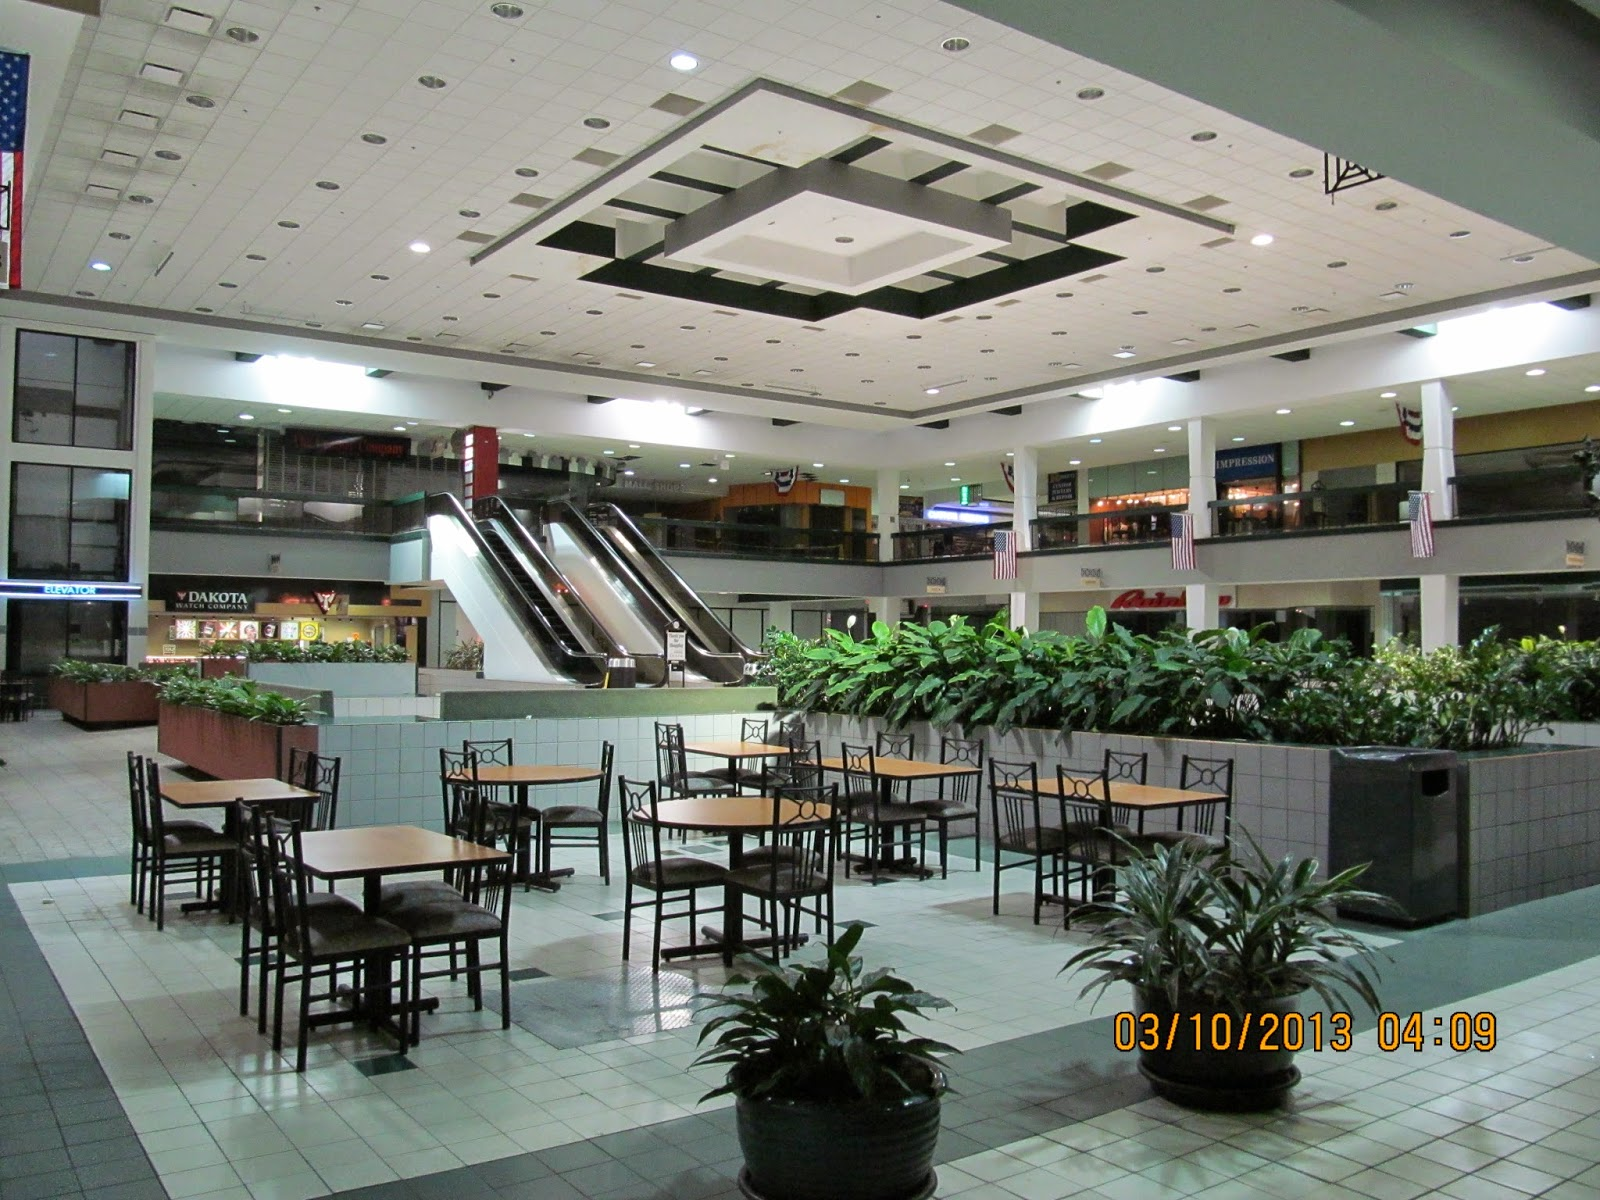 In 2008, The Plaza Took Its Worst Hit When Office Depot Closed, As Many  Smaller Stores In The Mall Left Following.